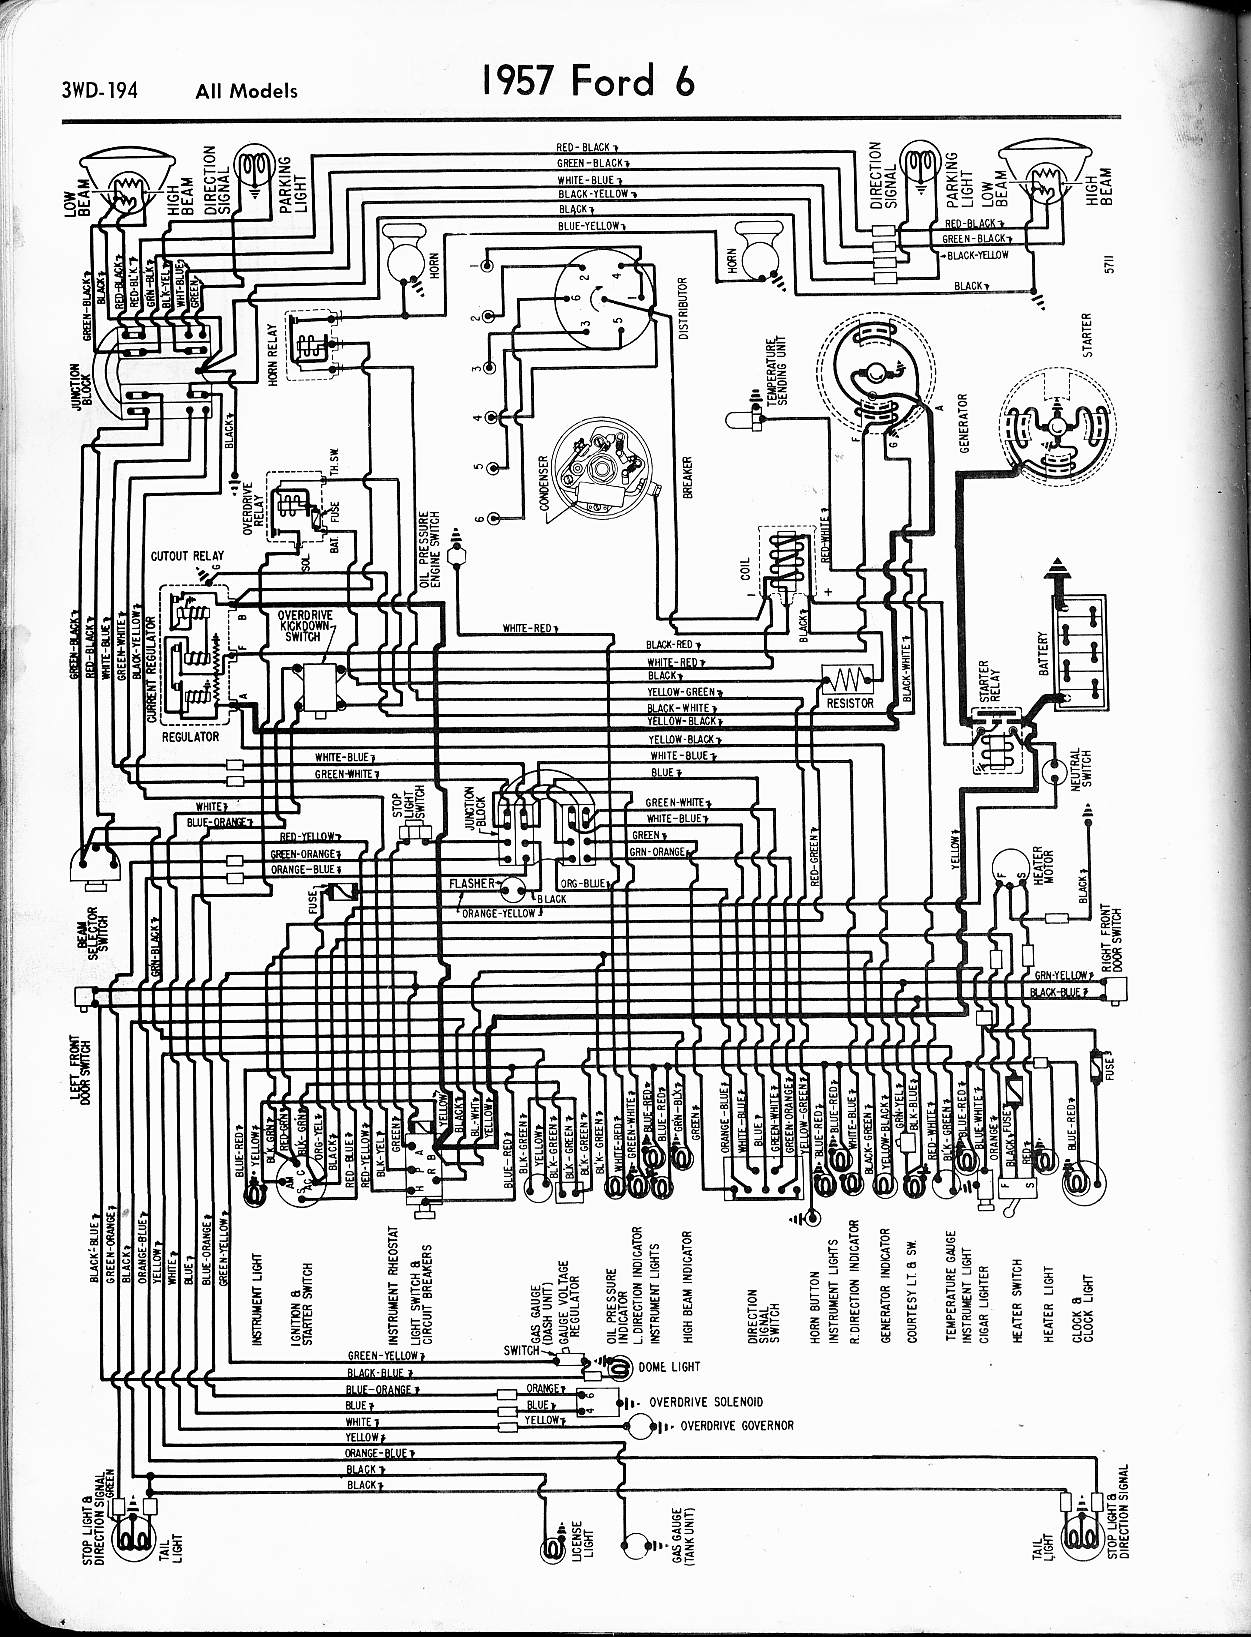 Index of wiring diagrams for 1957-1965 Ford. 1957 6 Cyl .All Models